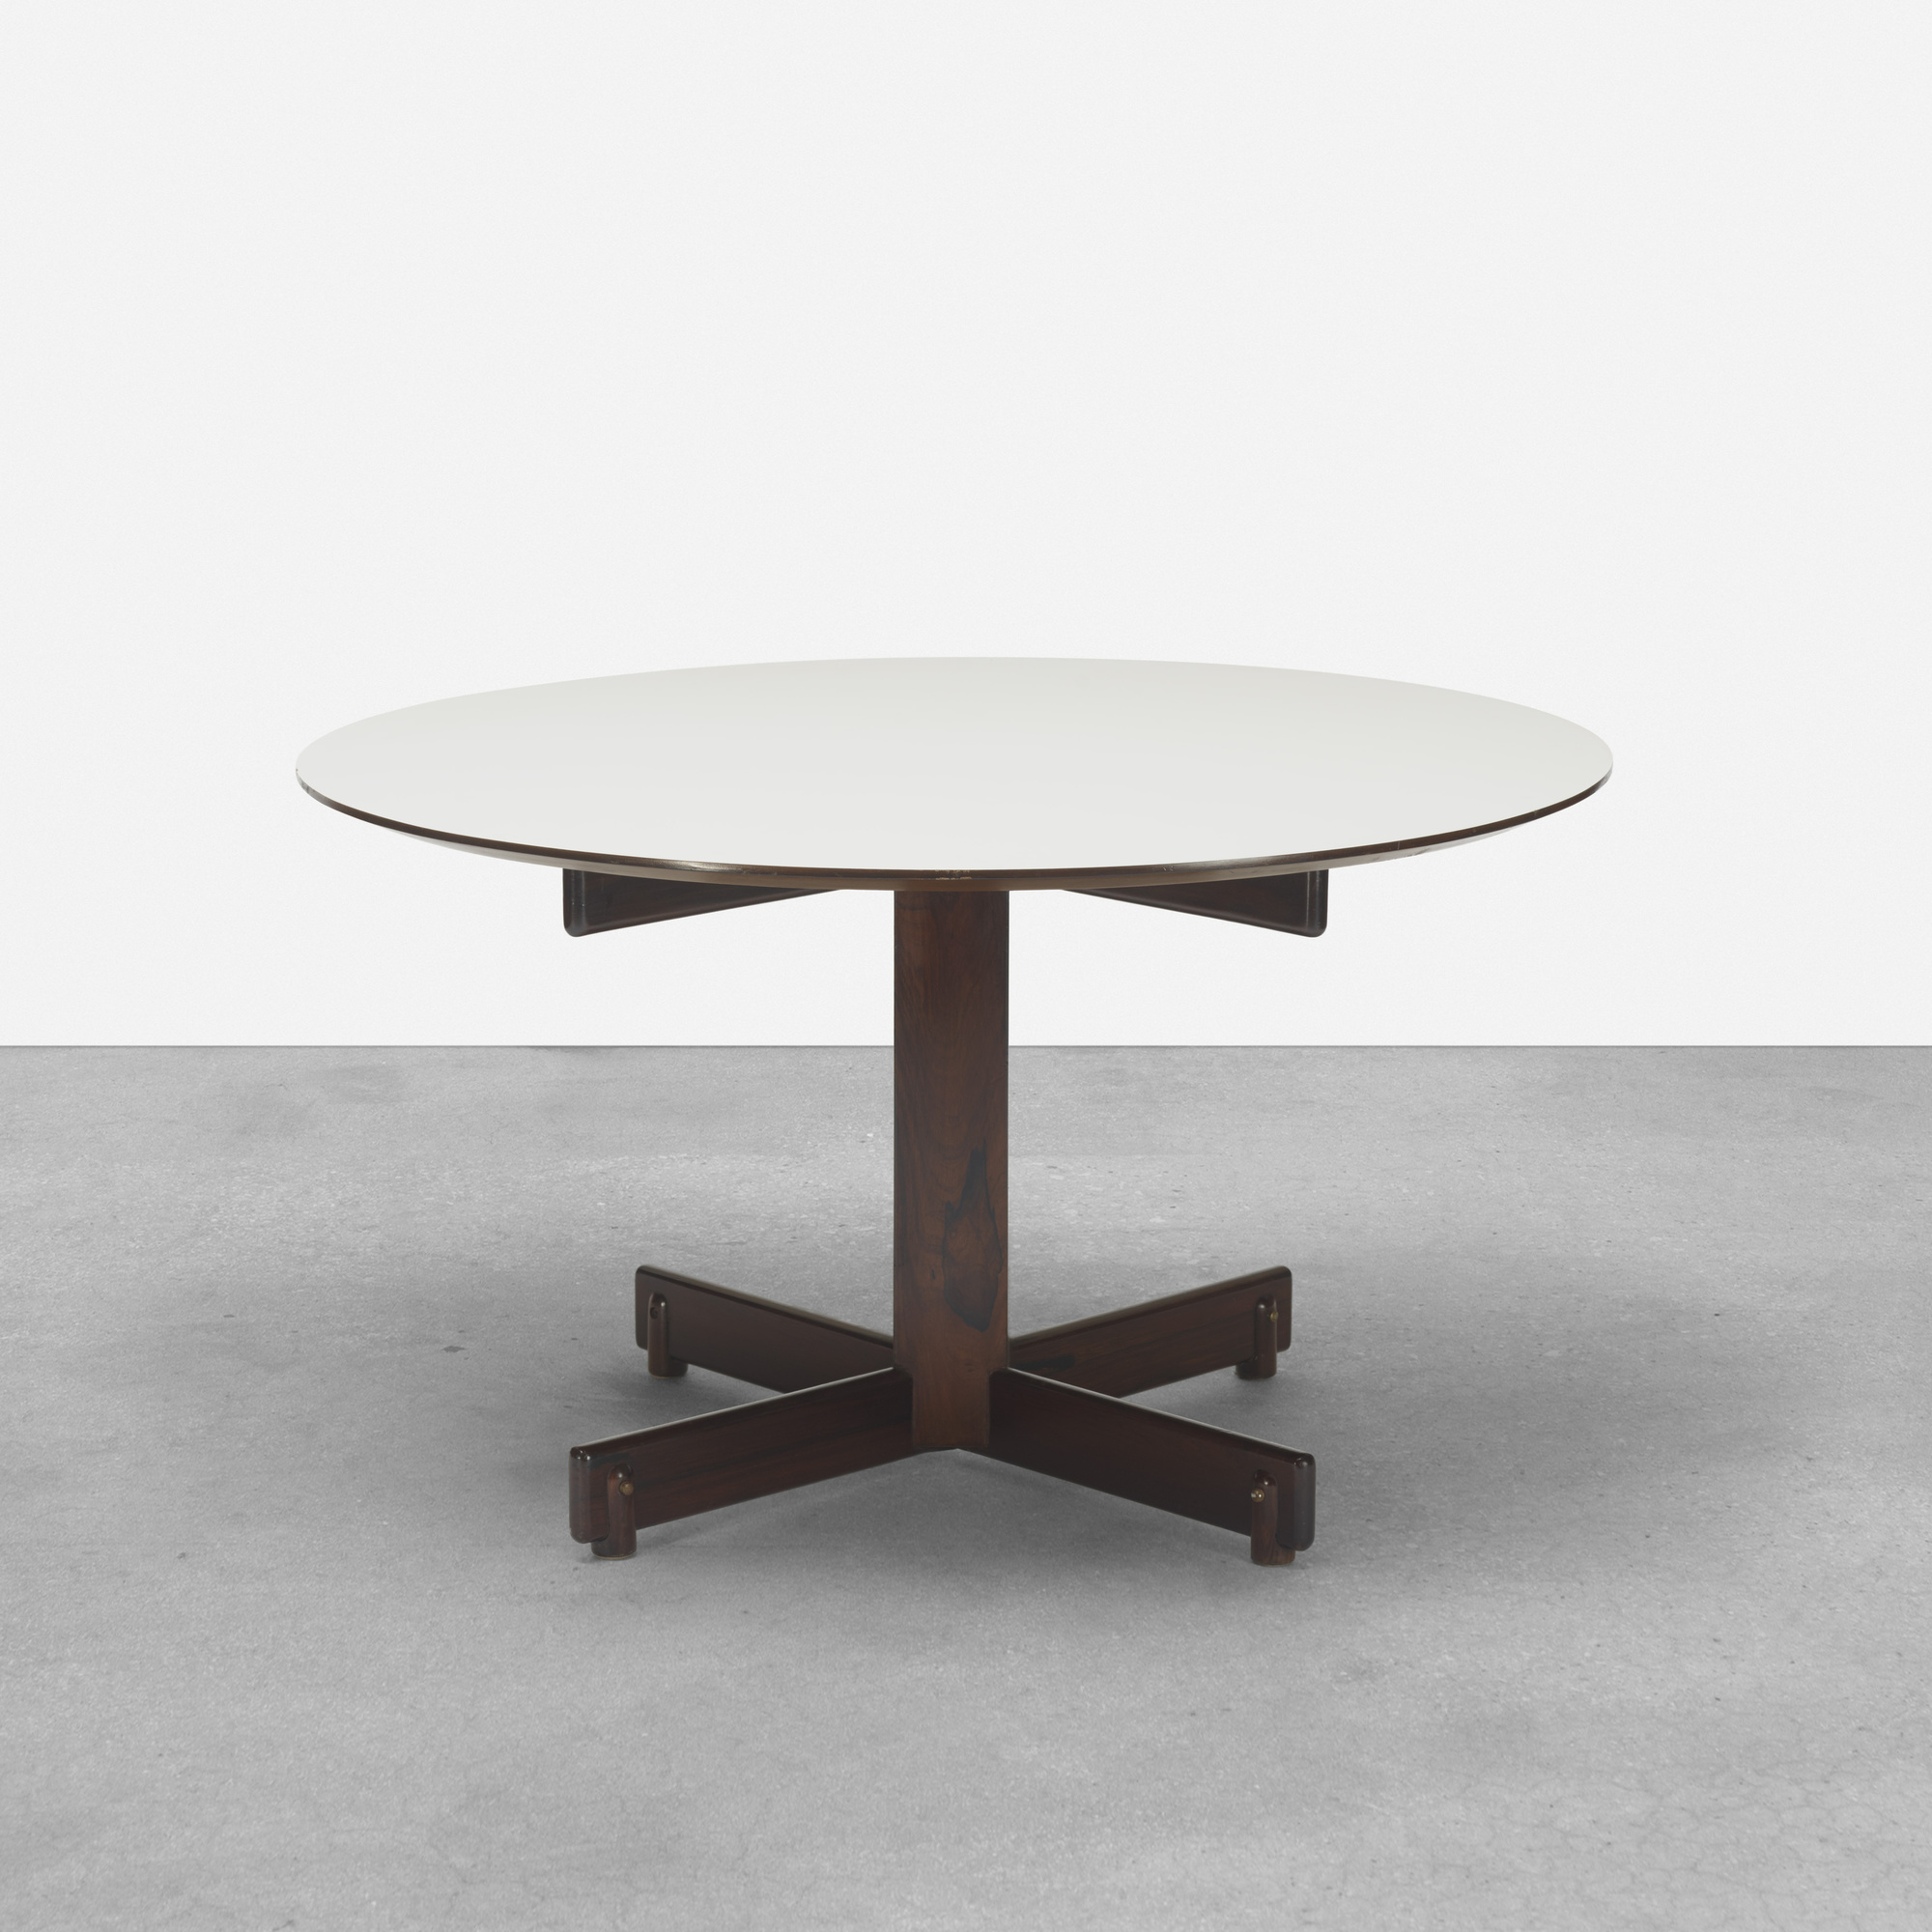 178: Sergio Rodrigues / Alex dining table (1 of 1)